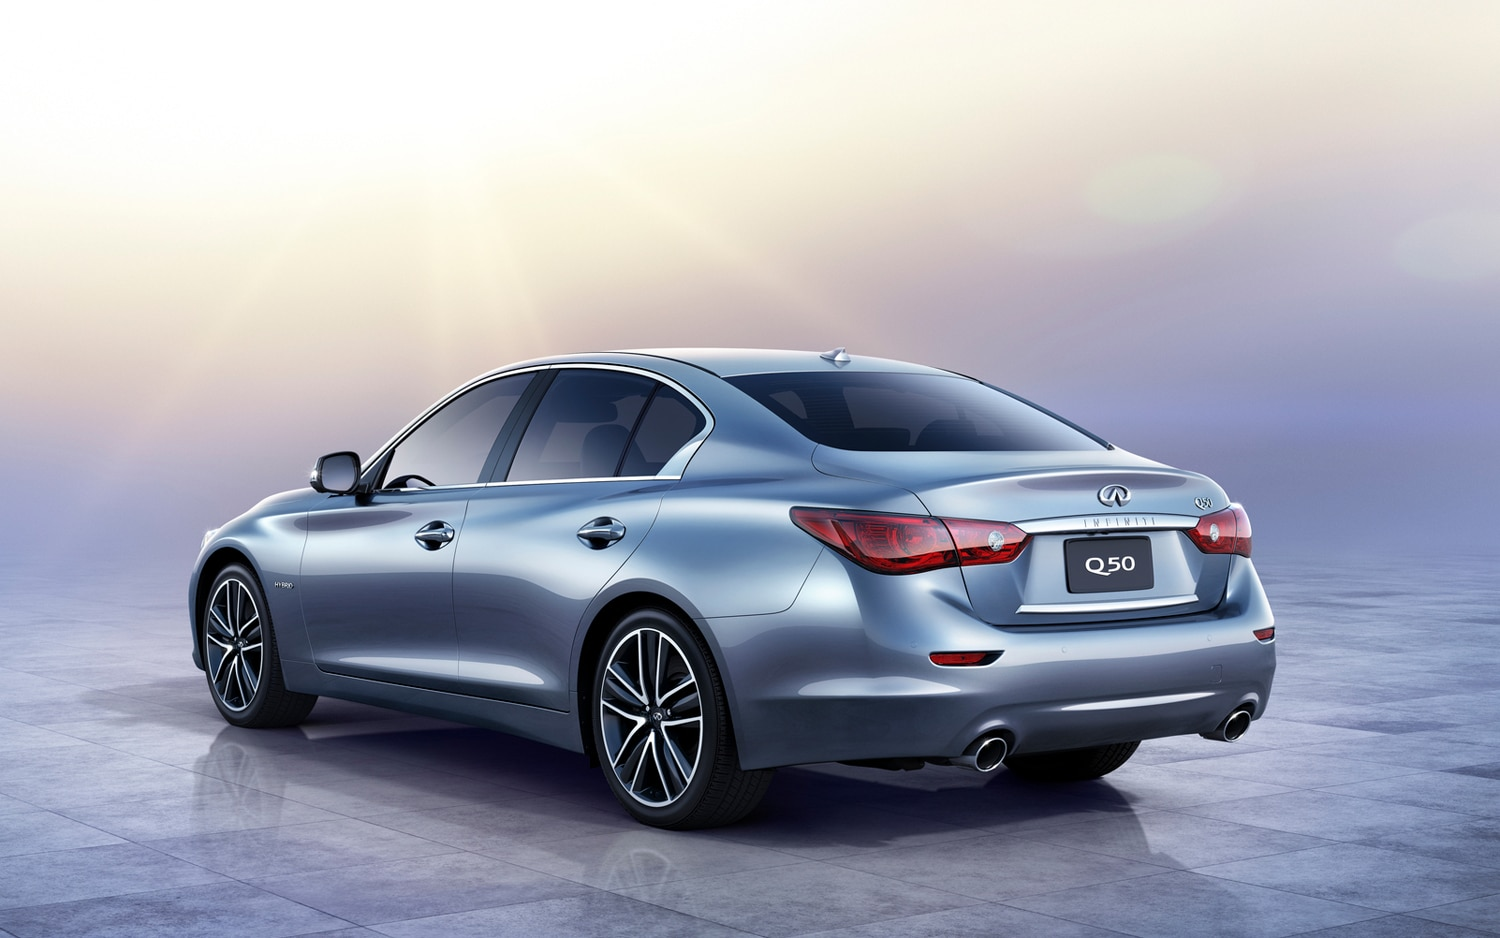 2014 Infiniti Q50 Rear Left View1